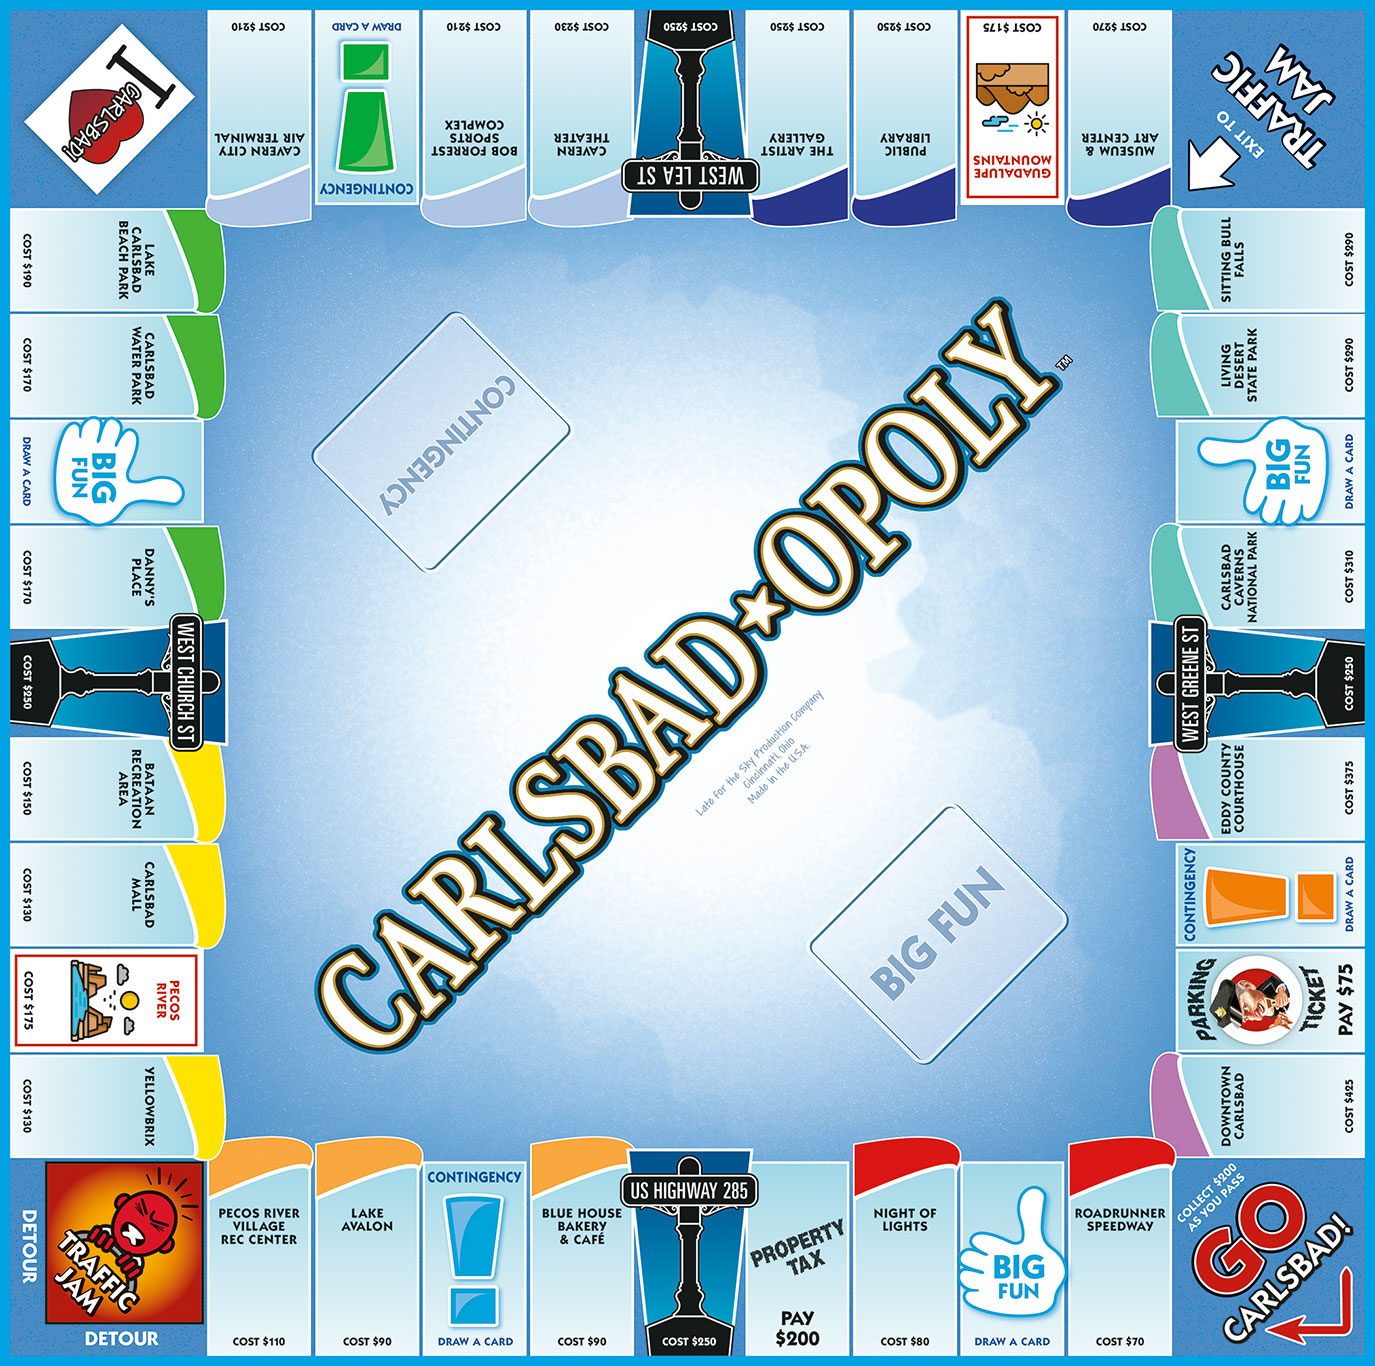 CARLSBAD-OPOLY (NM) Board Game